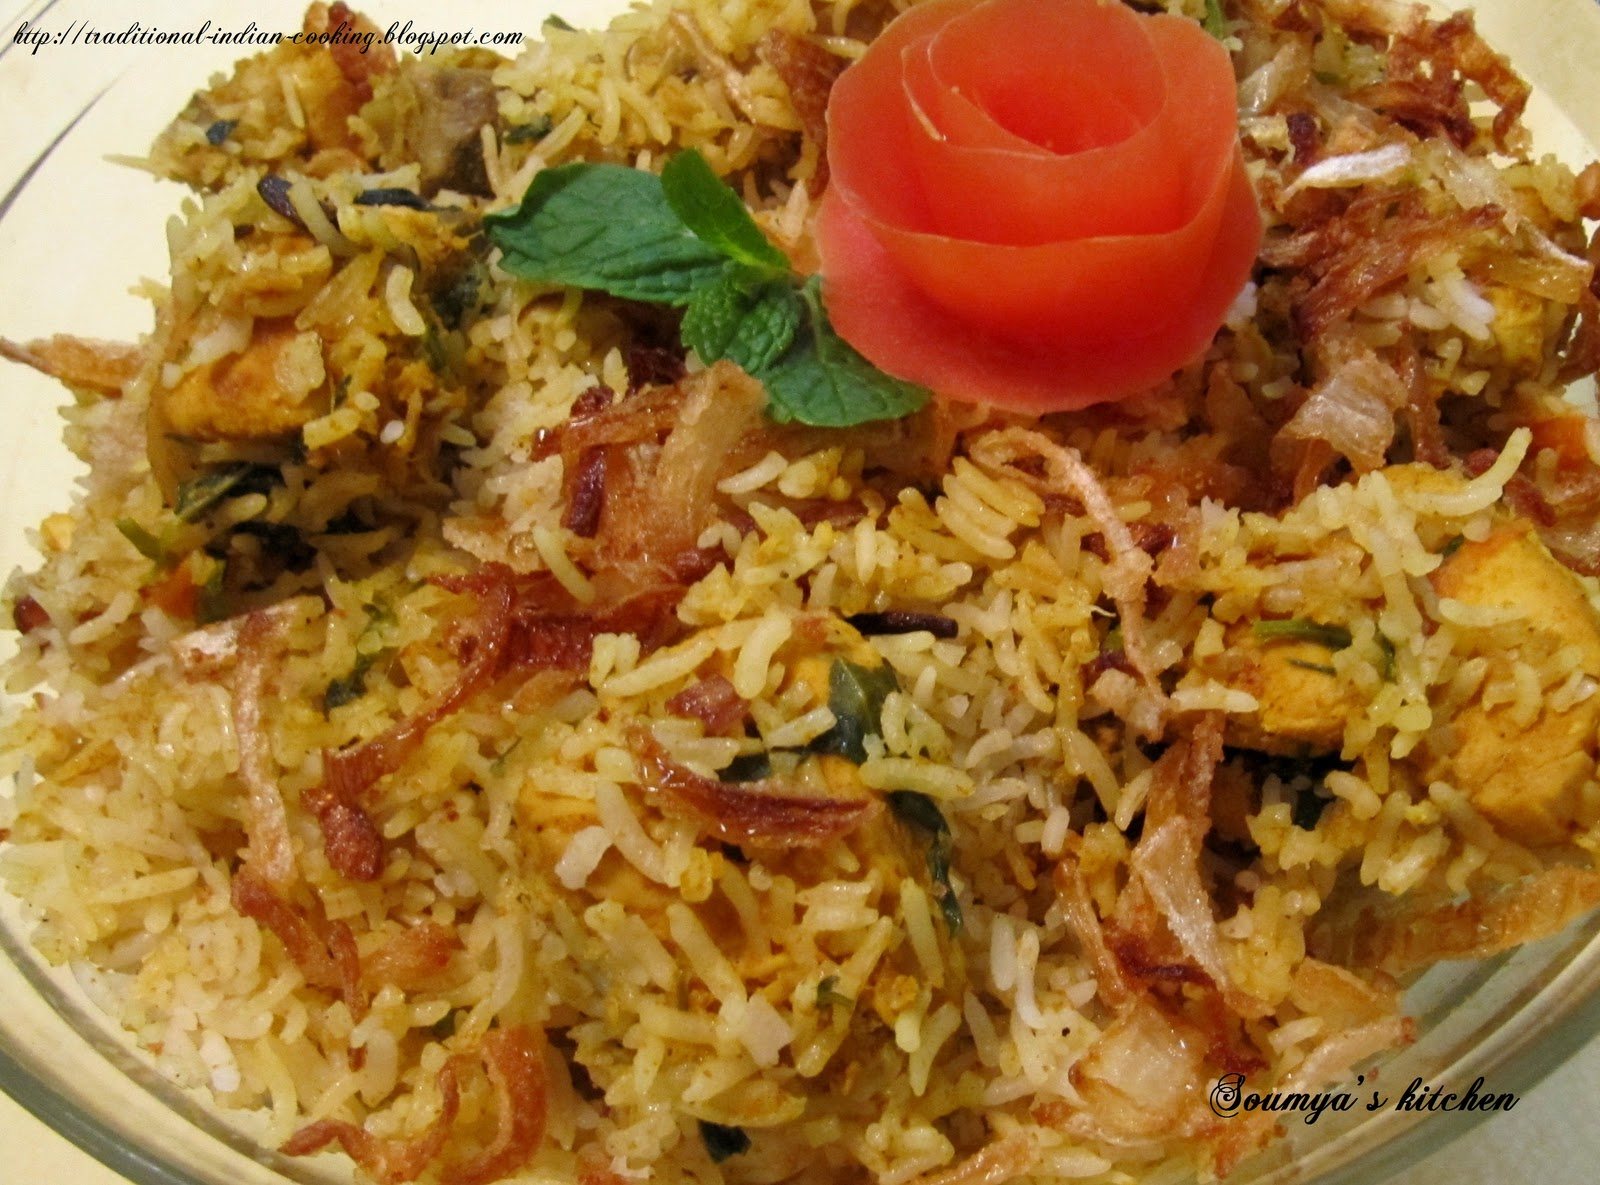 Soumya's kitchen: CHICKEN BIRYANI